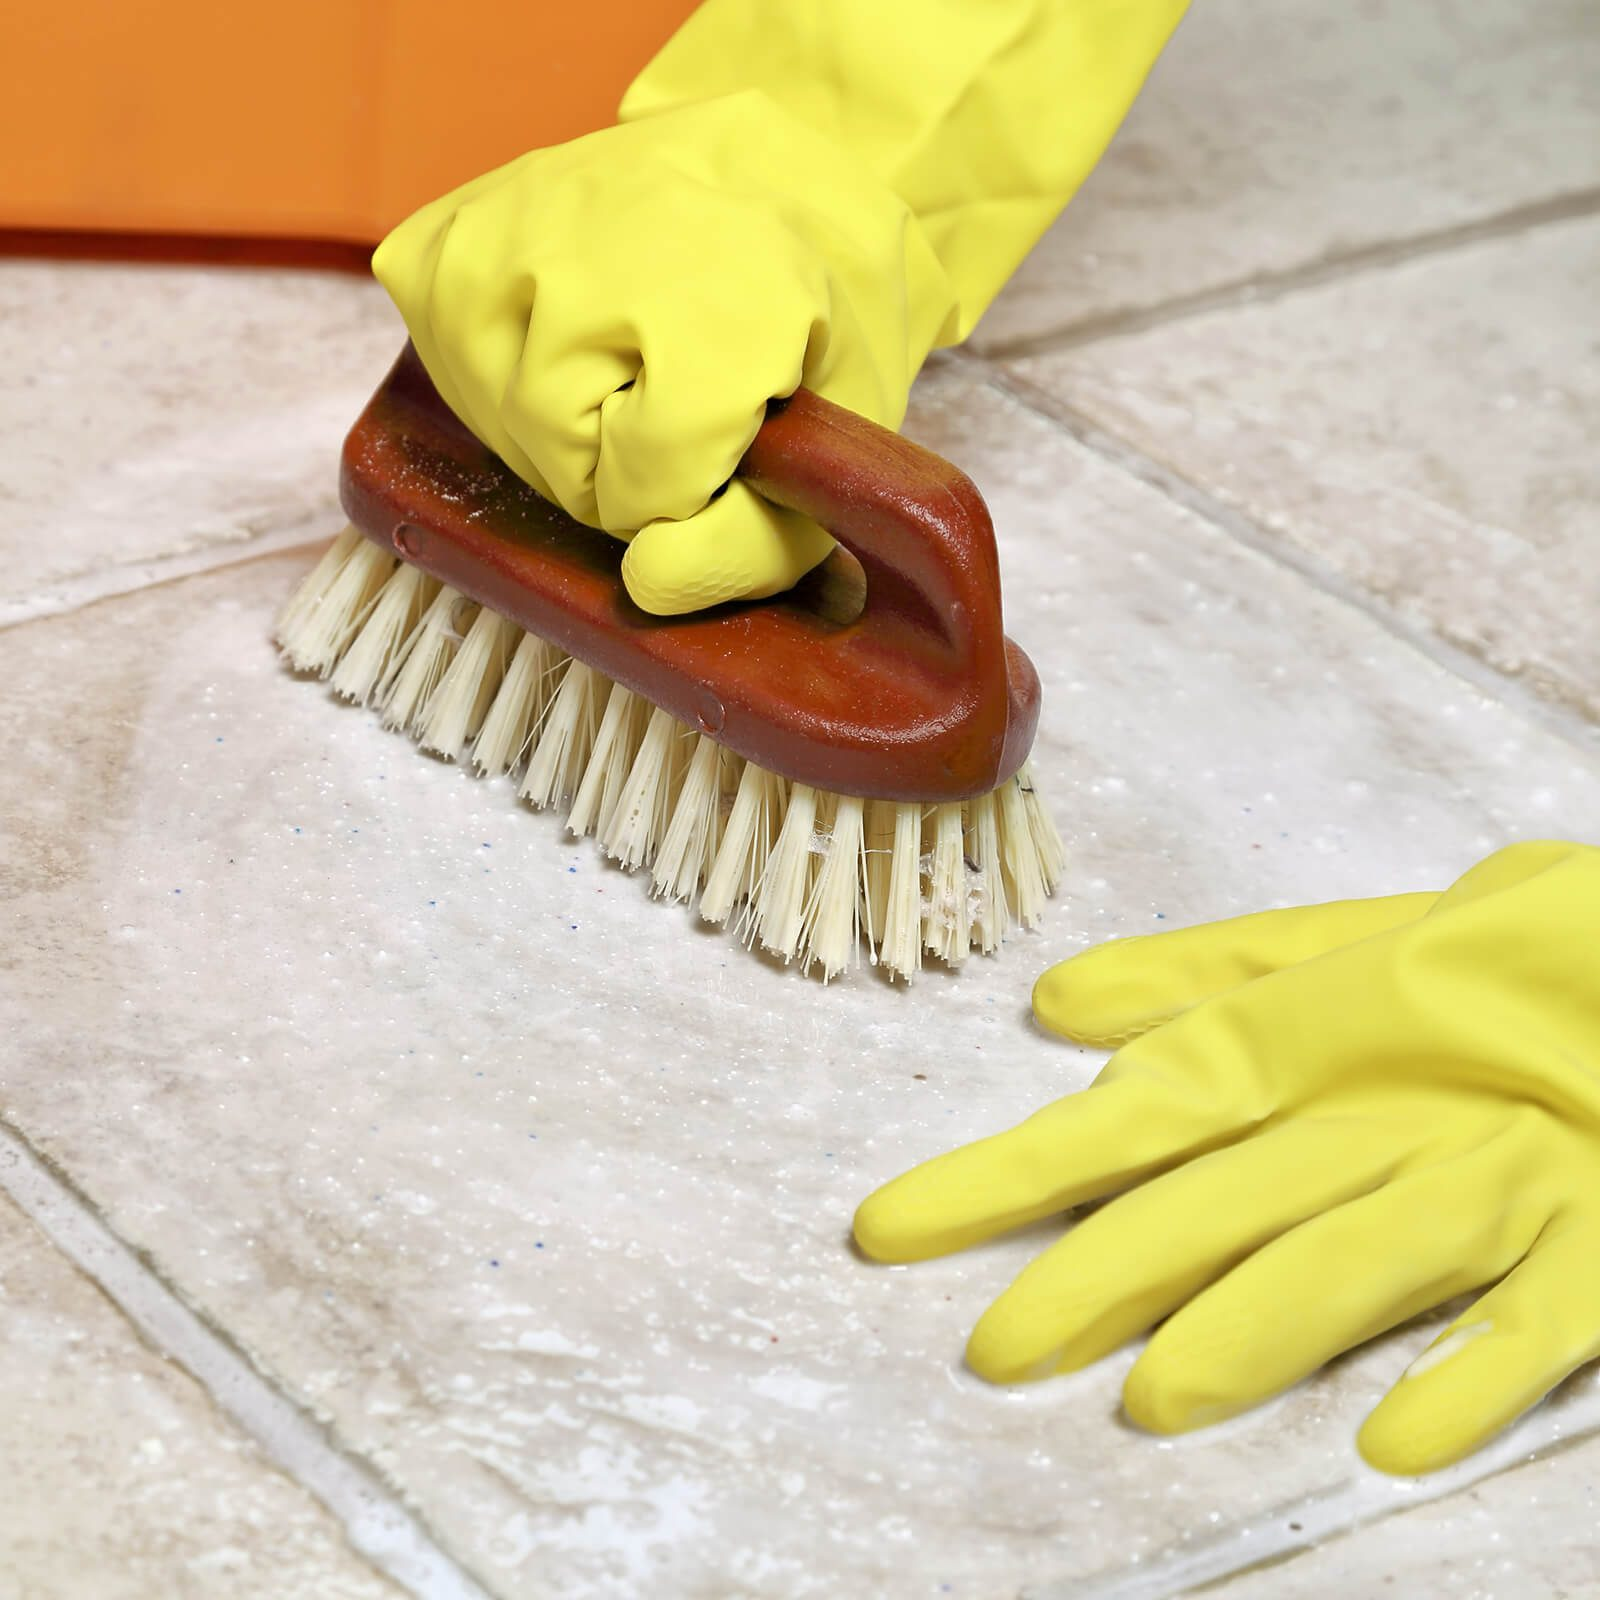 Tile cleaning | Flooring By Design